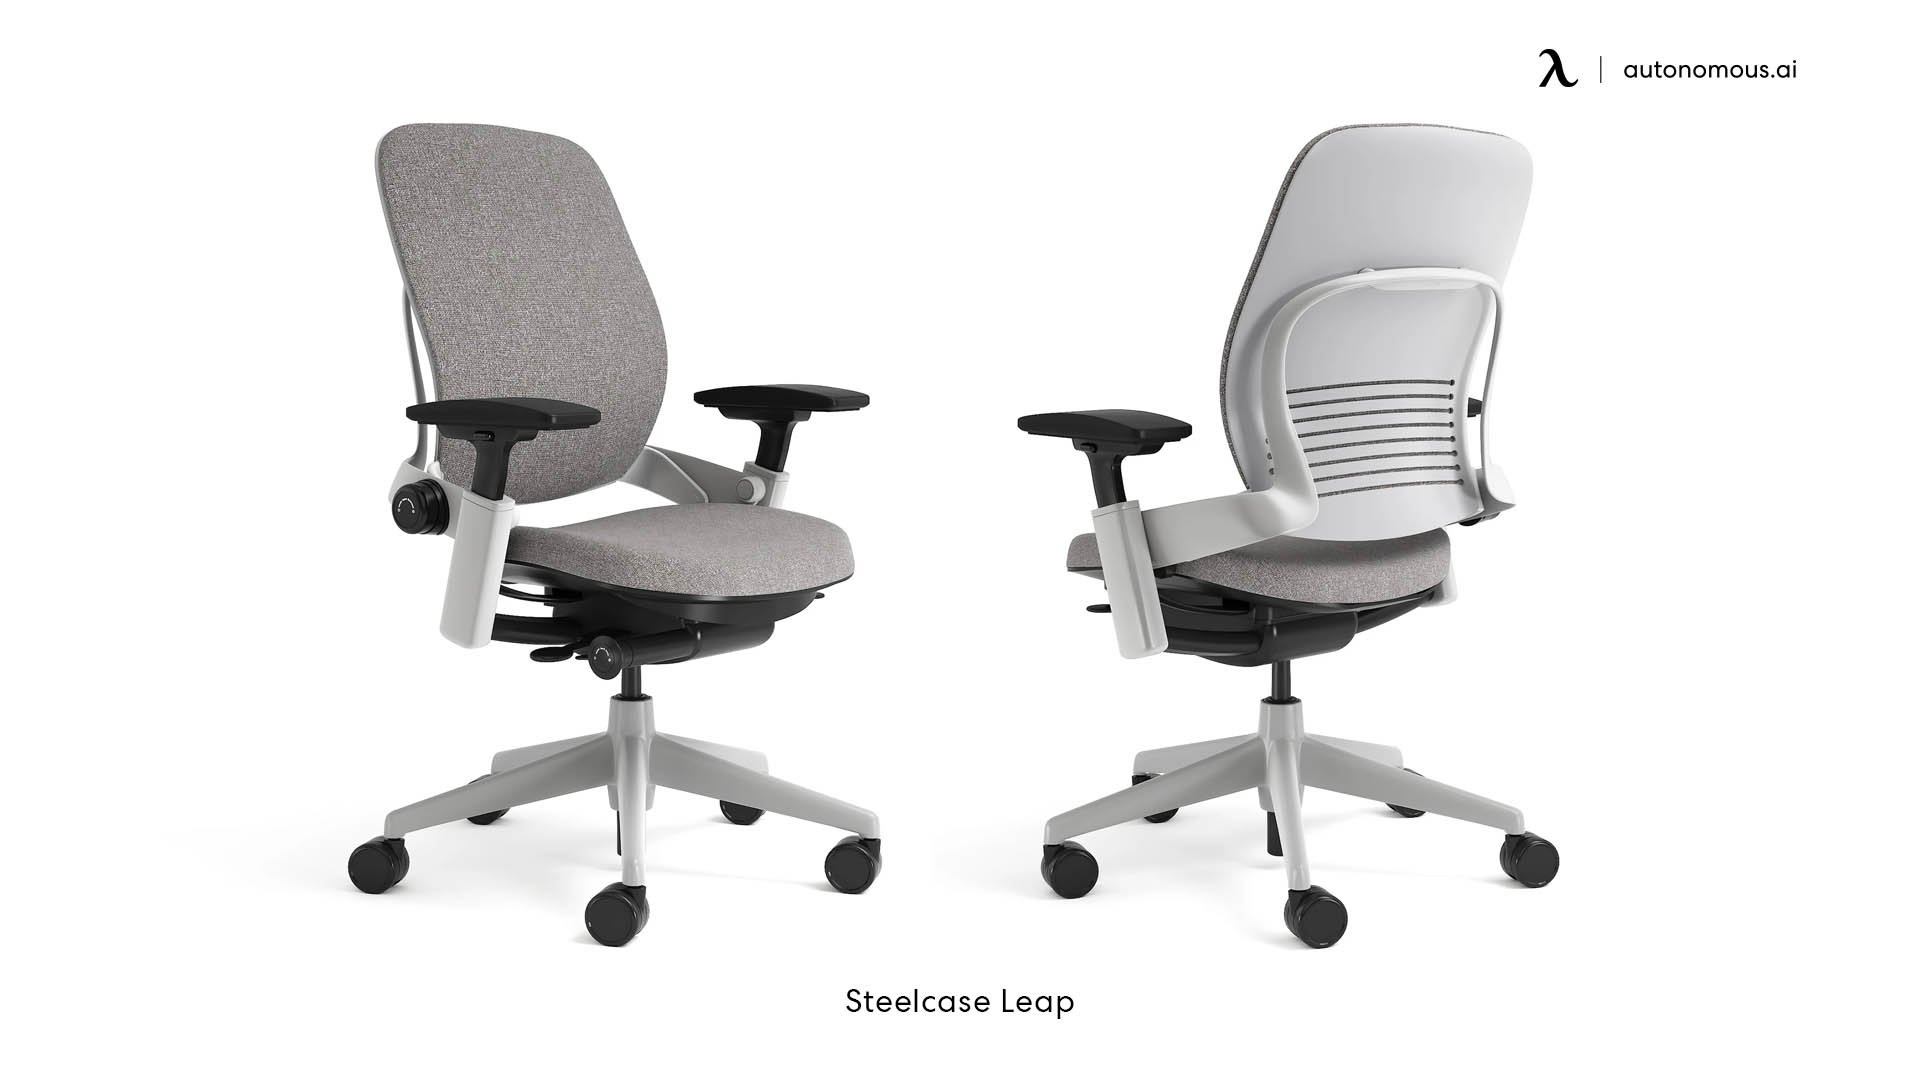 Steelcase Leap - Comfortable office chairs for long hours